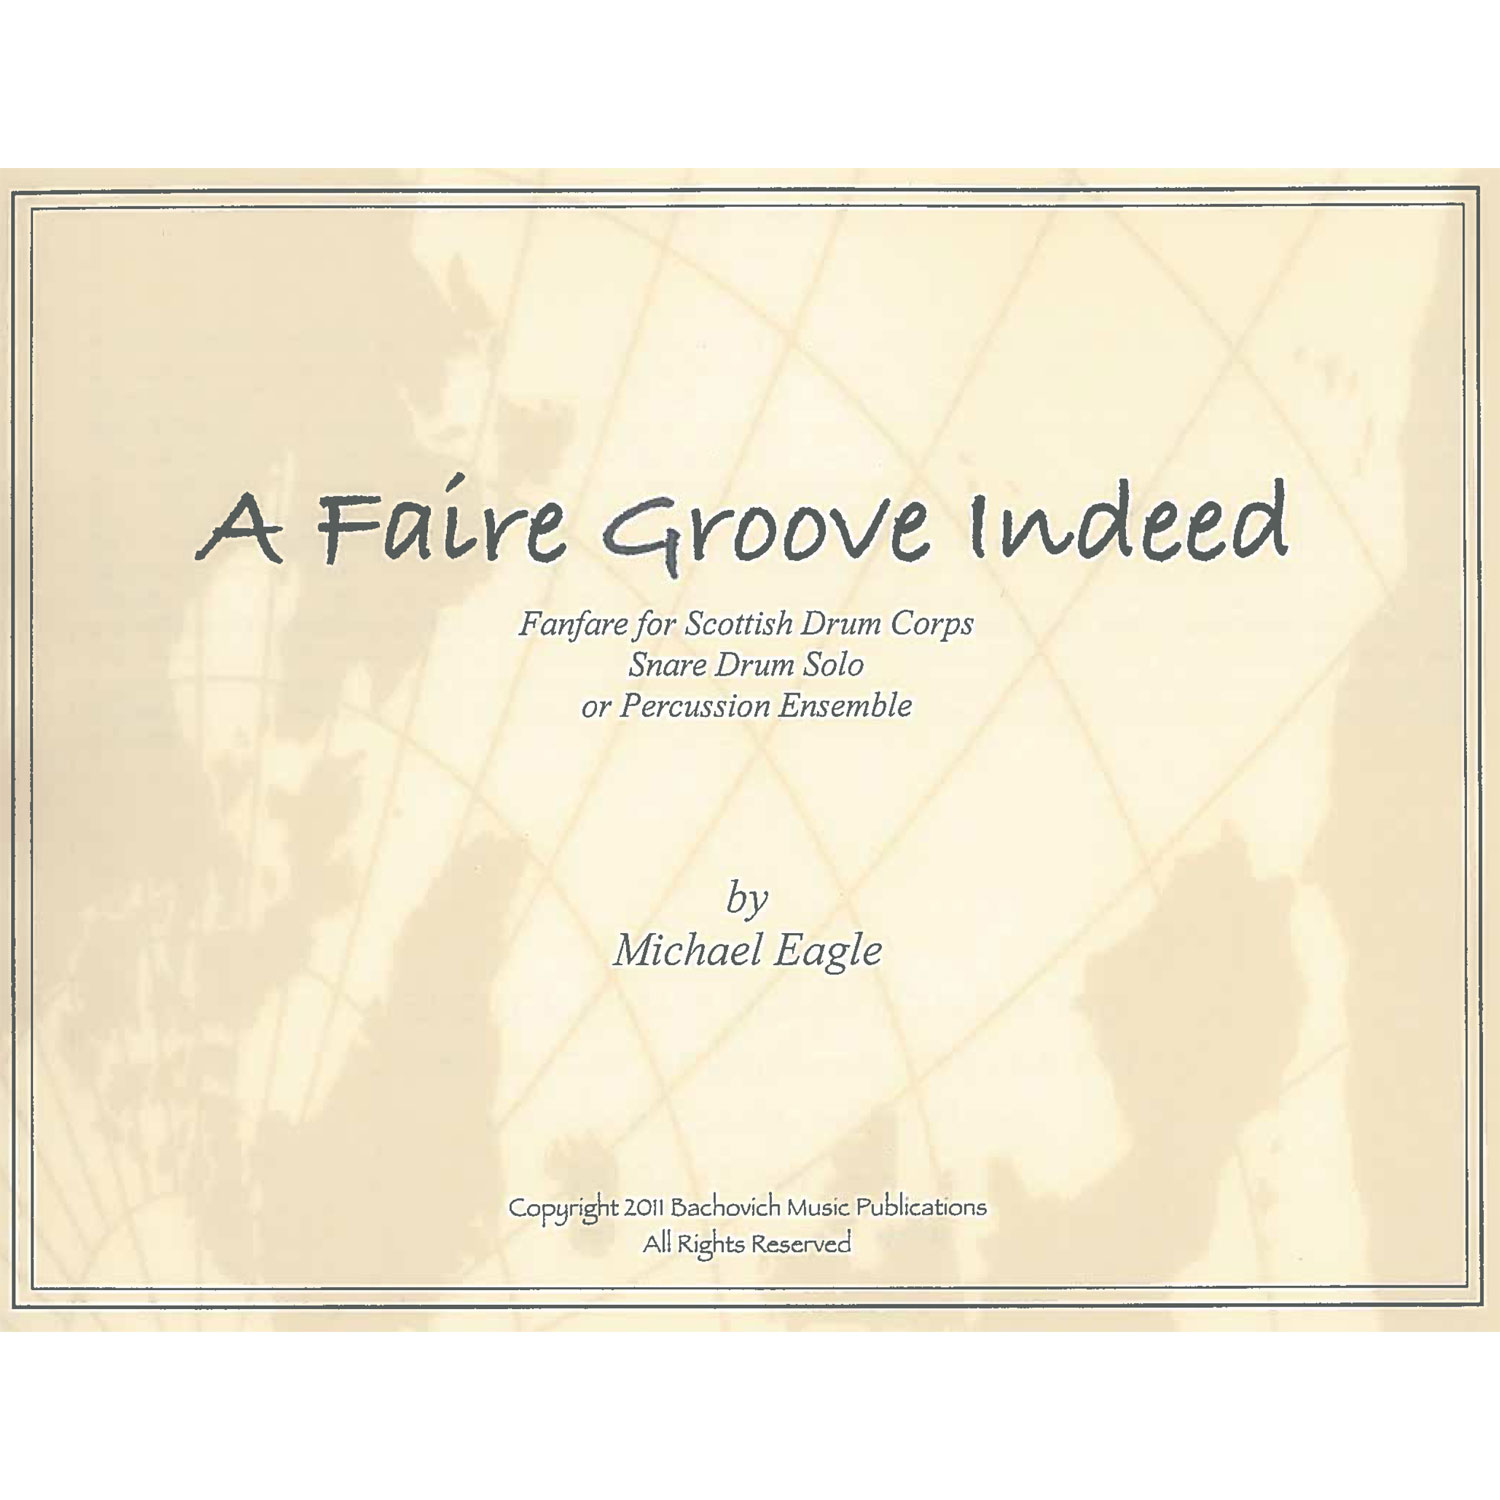 A Faire Groove Indeed by Michael Eagle